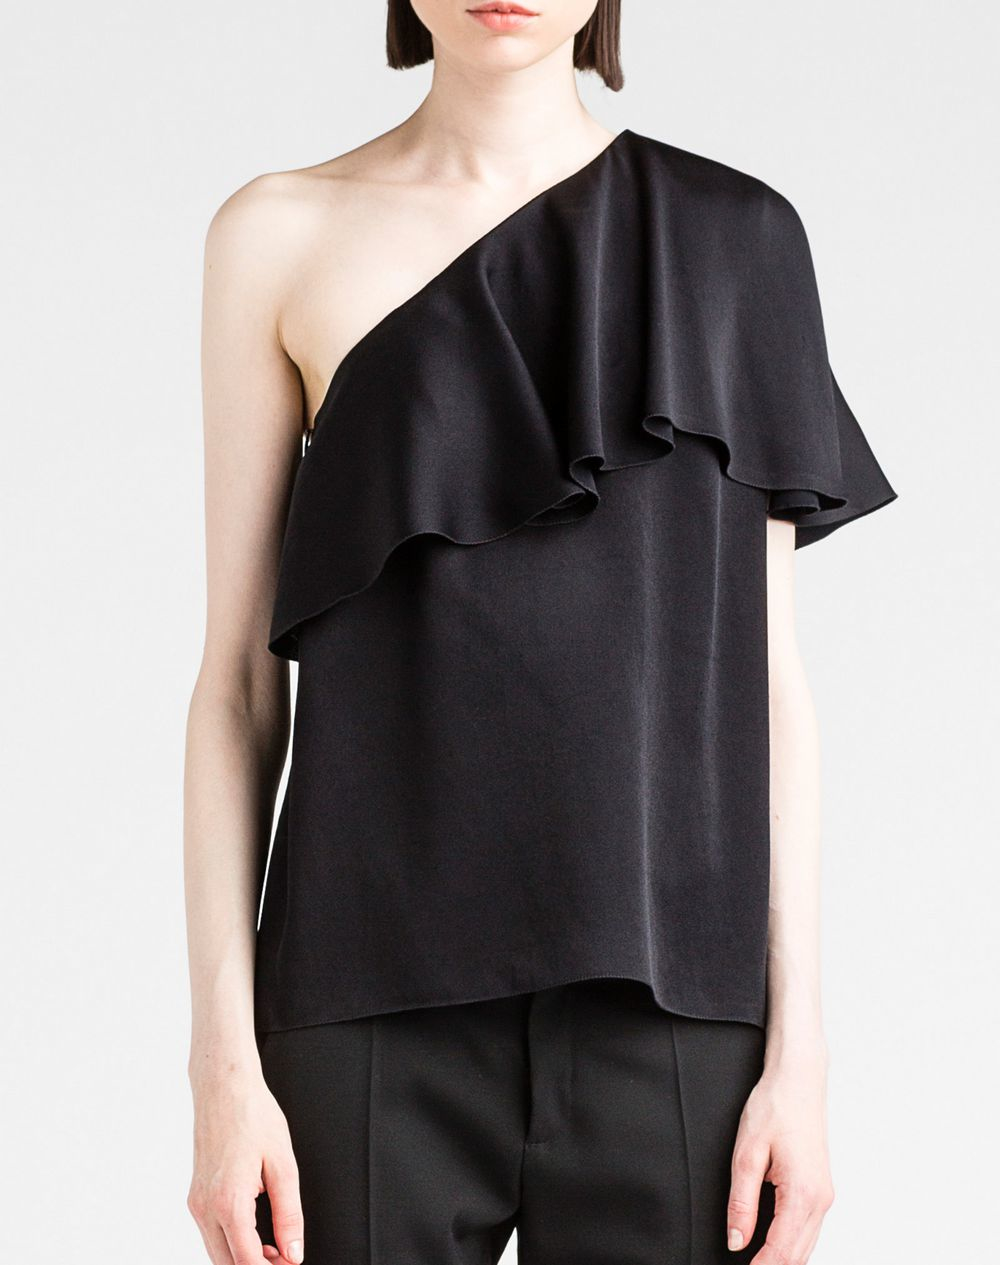 Lyst - Lanvin Top in Black